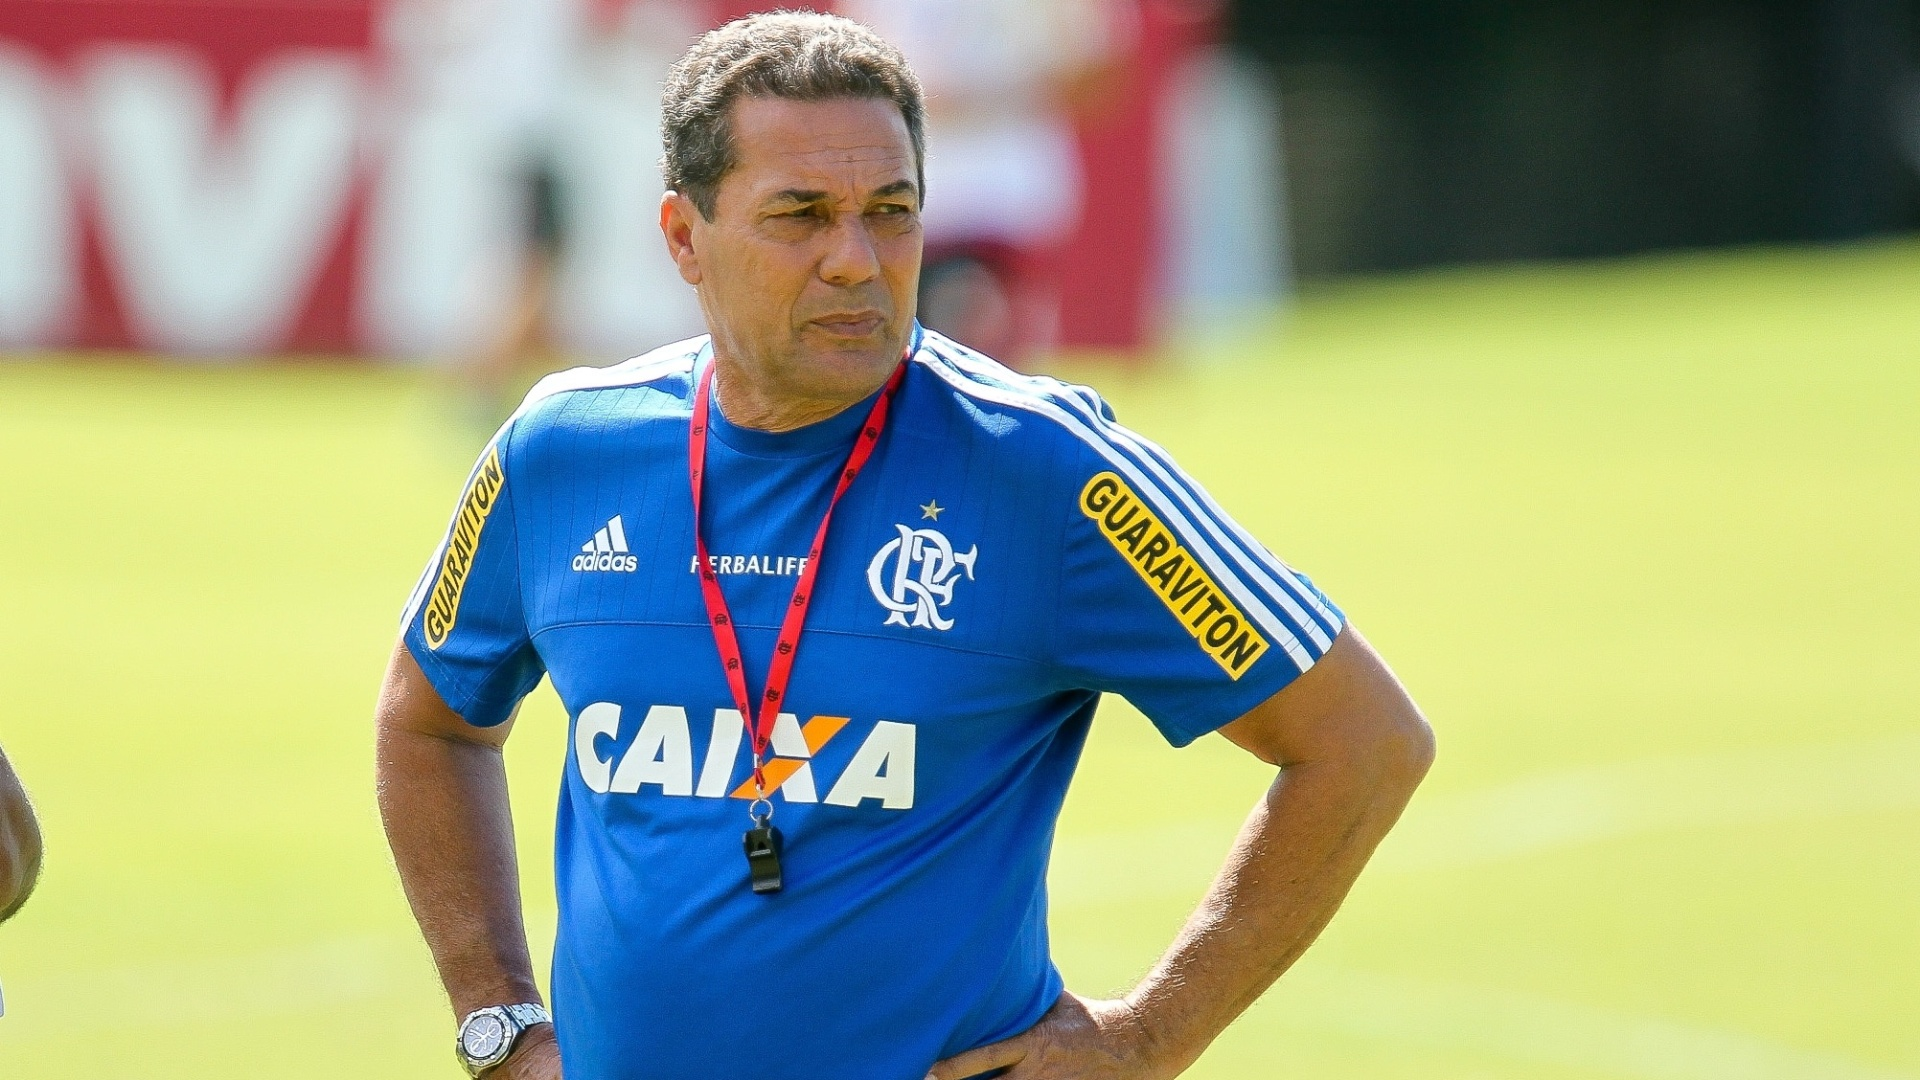 Vanderlei Luxemburgo observa treinamento do Flamengo no CT Ninho do Urubu